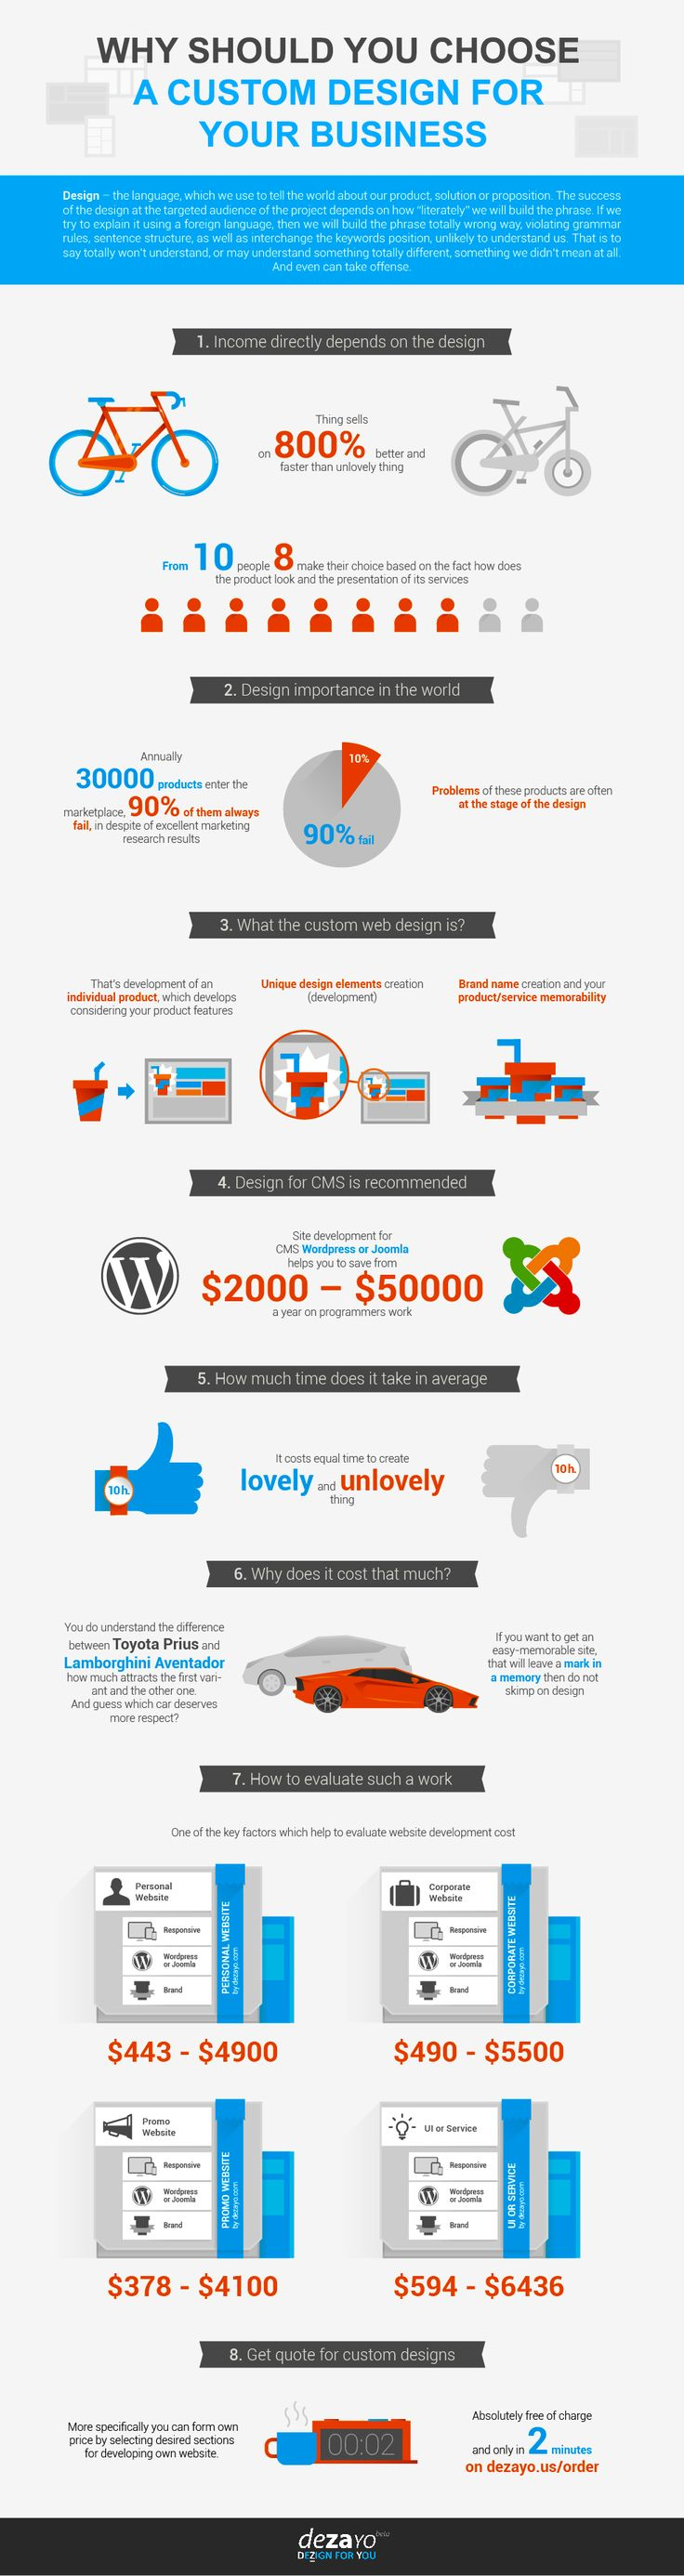 #INFOgraphic > Benefits of Custom Web Design: Do you realize the substantial value of custom web design? Design is essential factor for making a selection from the variety of goods and services offered. Tailor-made web properties captivate visitors interest and empower incentive. See why keeping off the mainstream pays out.  > http://infographicsmania.com/benefits-of-custom-web-design/?utm_source=Pinterest&utm_medium=INFOGRAPHICSMANIA&utm_campaign=SNAP